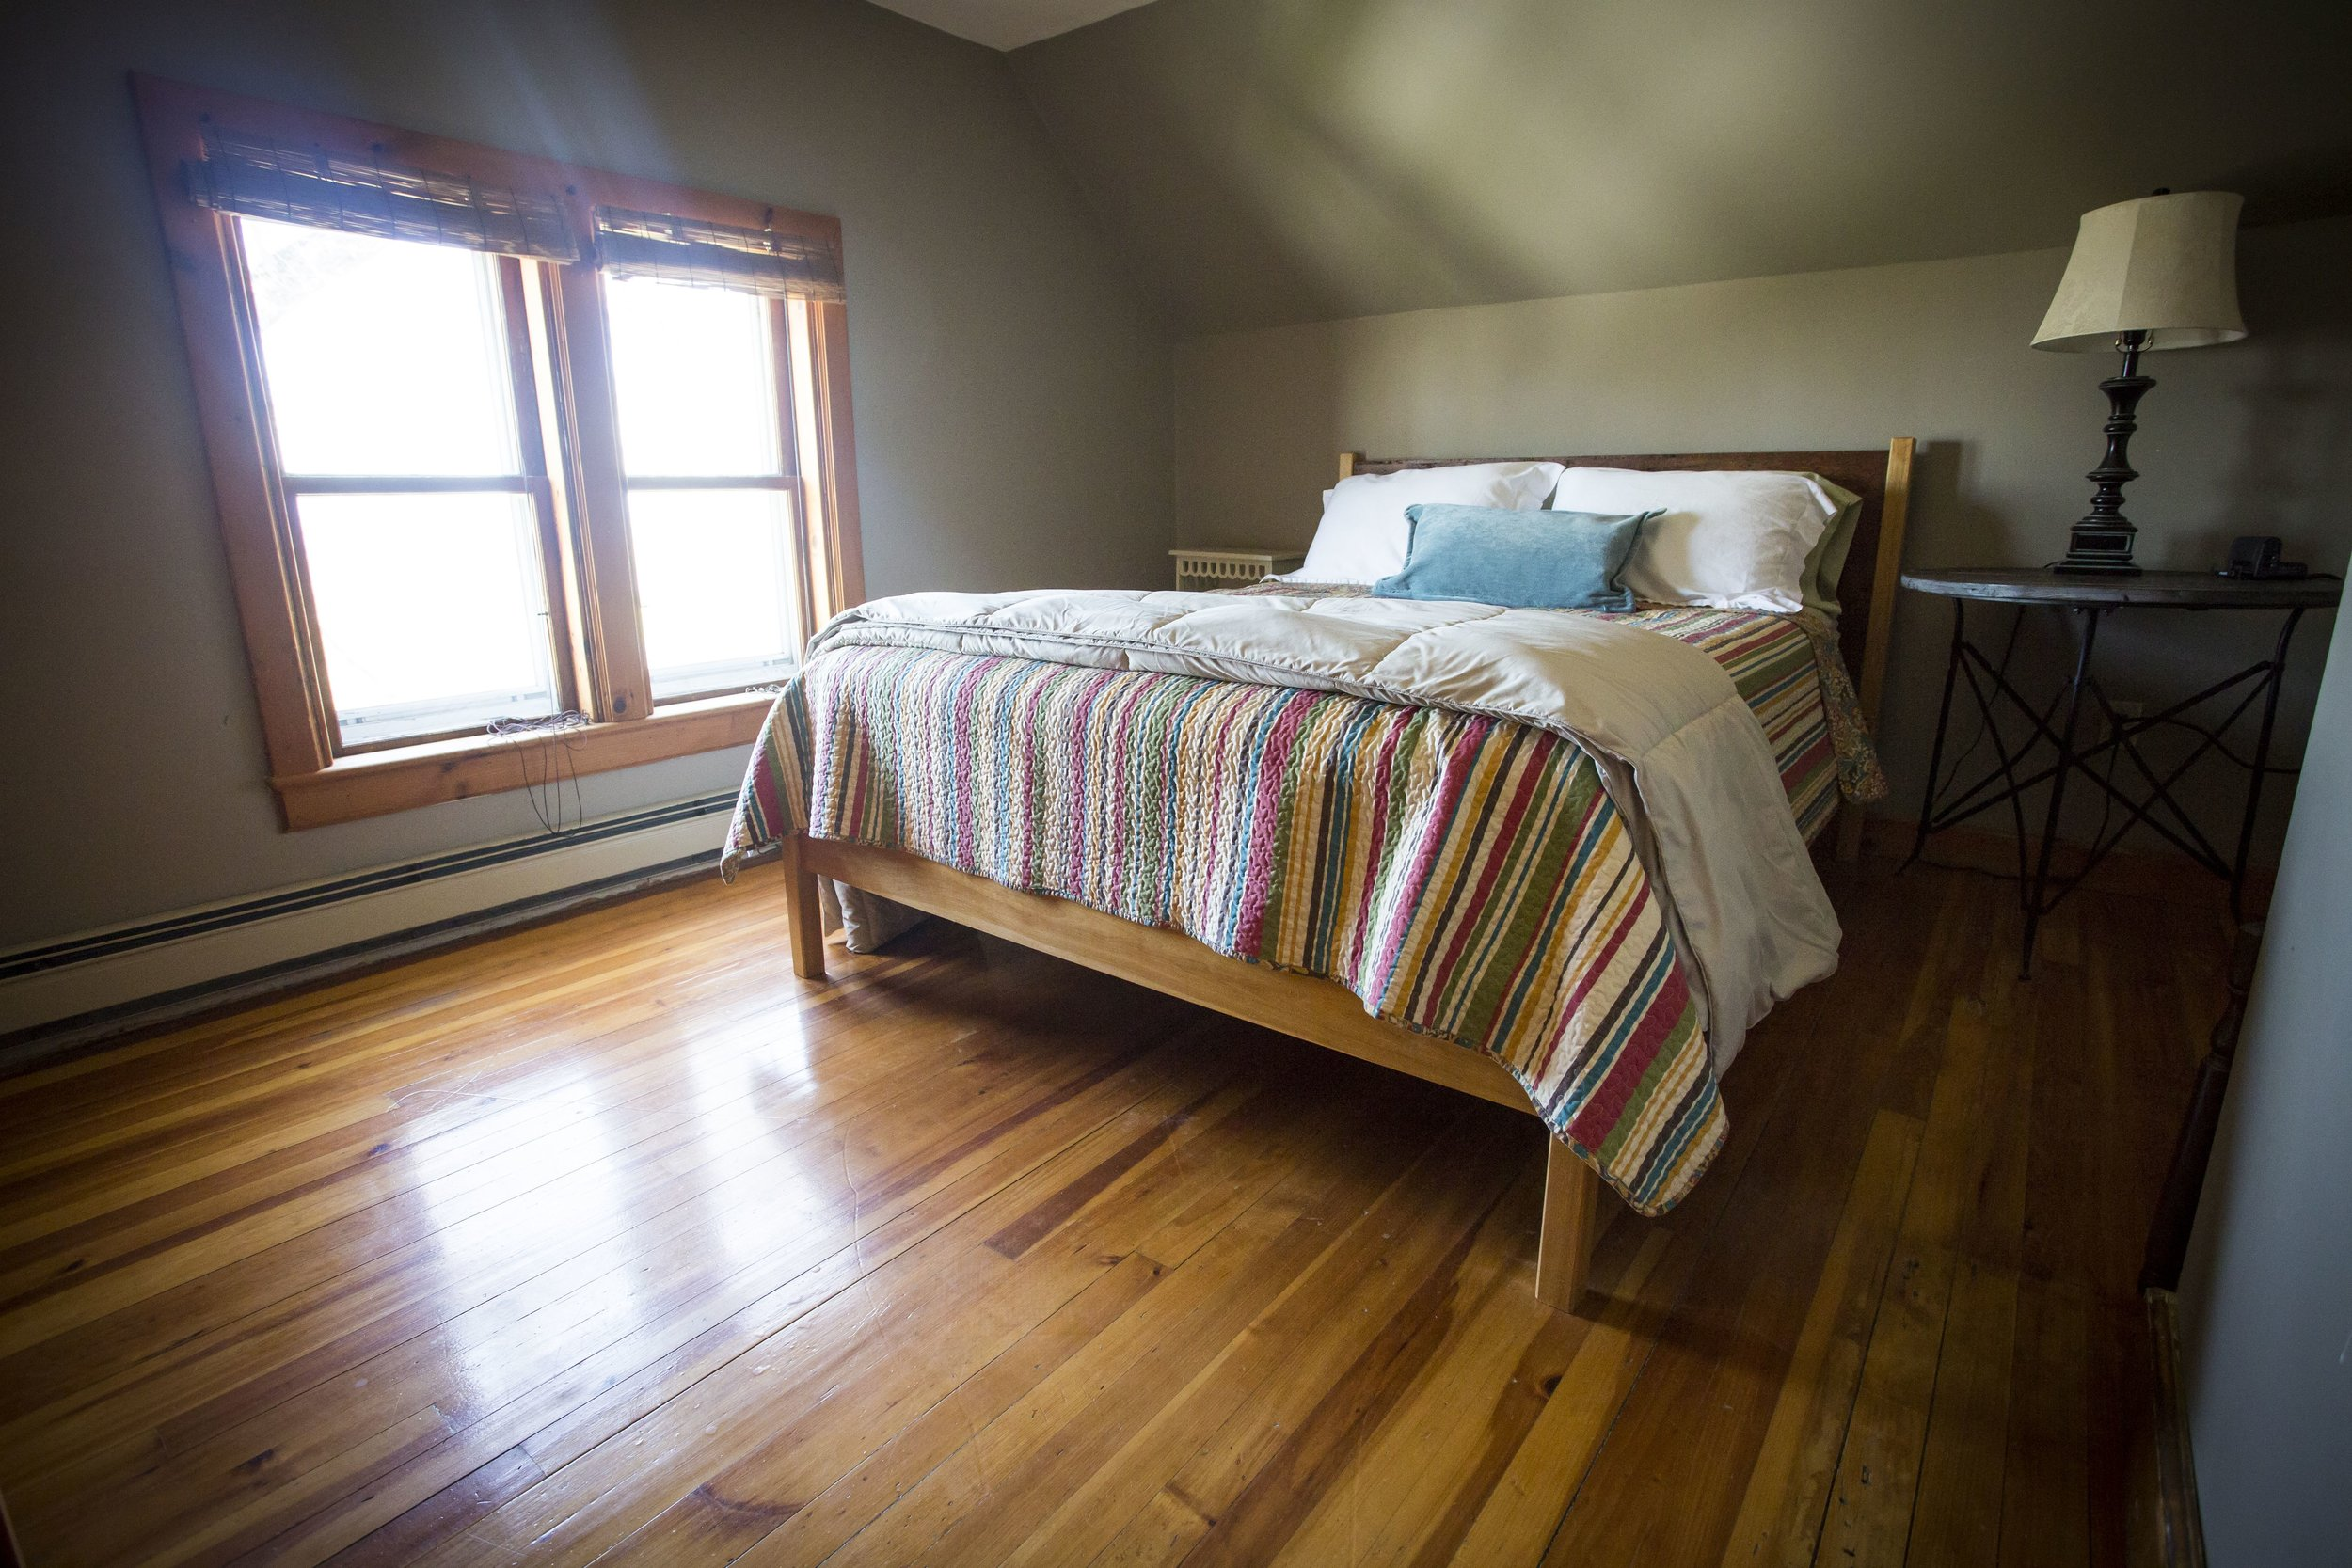 Right Wing upstairs west bedroom - Hardwood floors, handmade bed, fantastic views